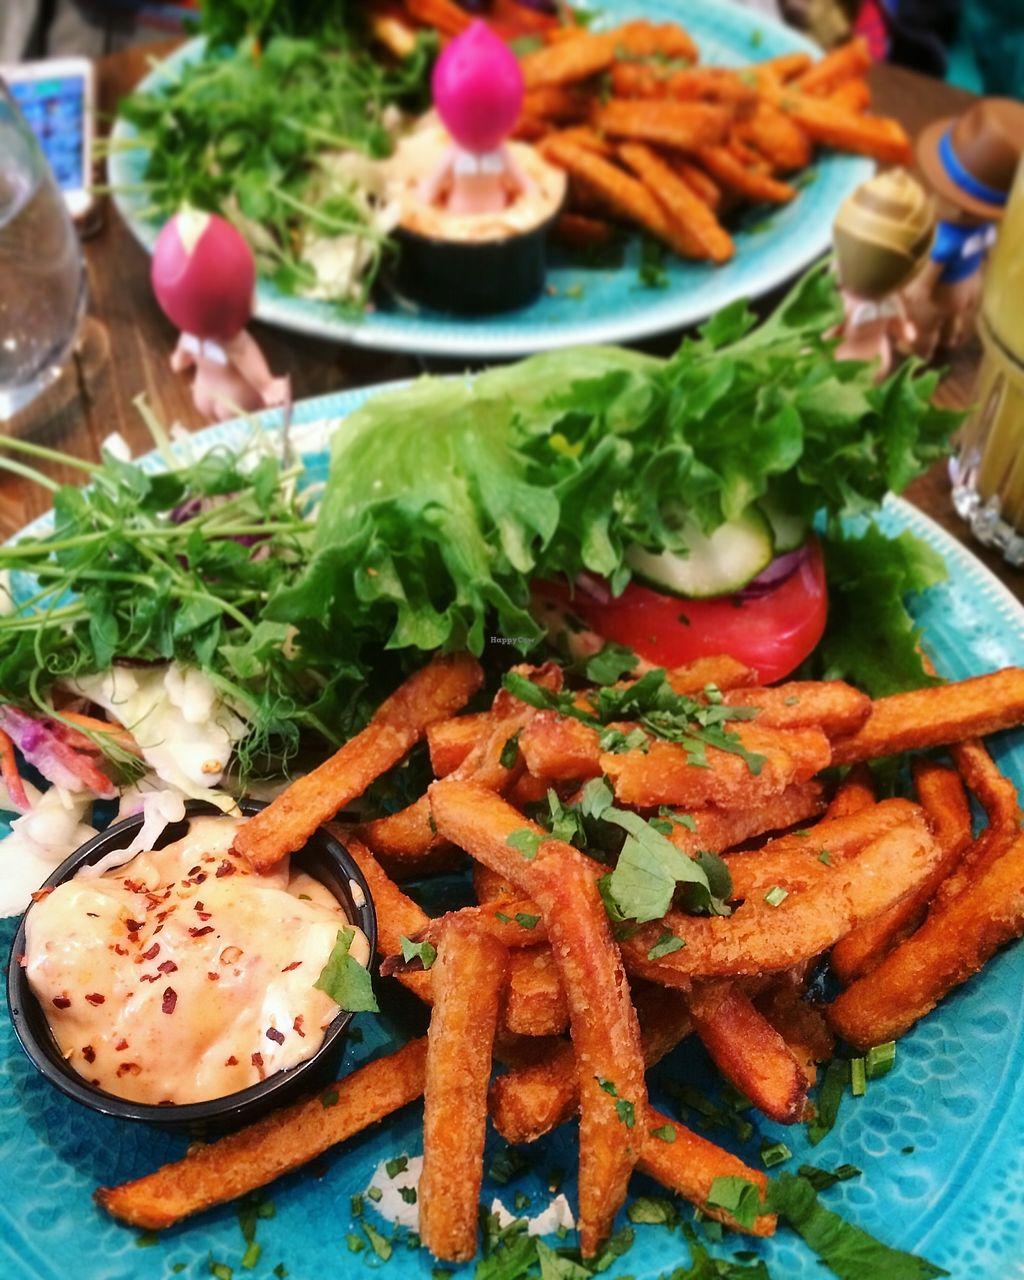 """Photo of Mahalo  by <a href=""""/members/profile/treemelody"""">treemelody</a> <br/>Burger plate; soy burger, salad, sweet potato fries, chili mayo. (Sonny angels not included!) <br/> October 9, 2017  - <a href='/contact/abuse/image/66713/313704'>Report</a>"""